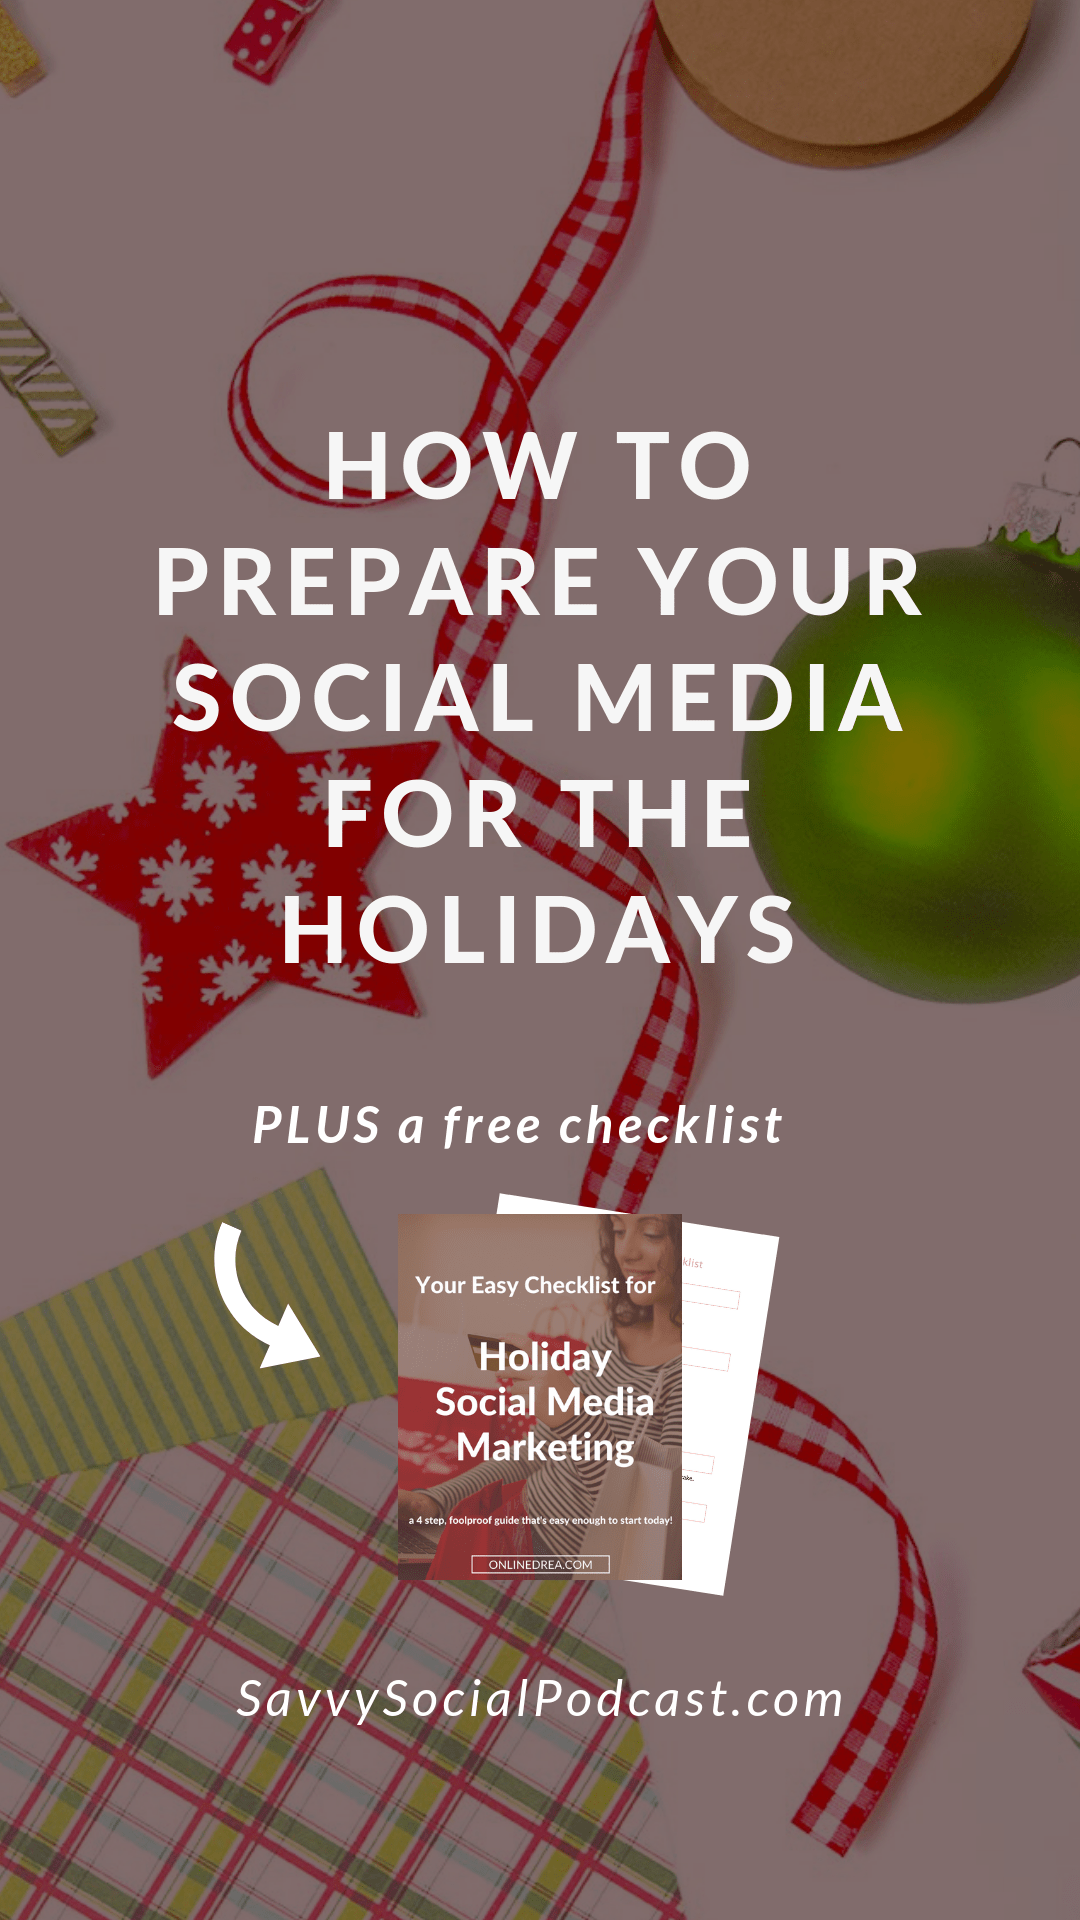 The holidays are oftentimes a huge sales driver for most businesses, no matter the size. But where do you begin when it comes to successfully driving web traffic and gaining sales during this fruitful season?